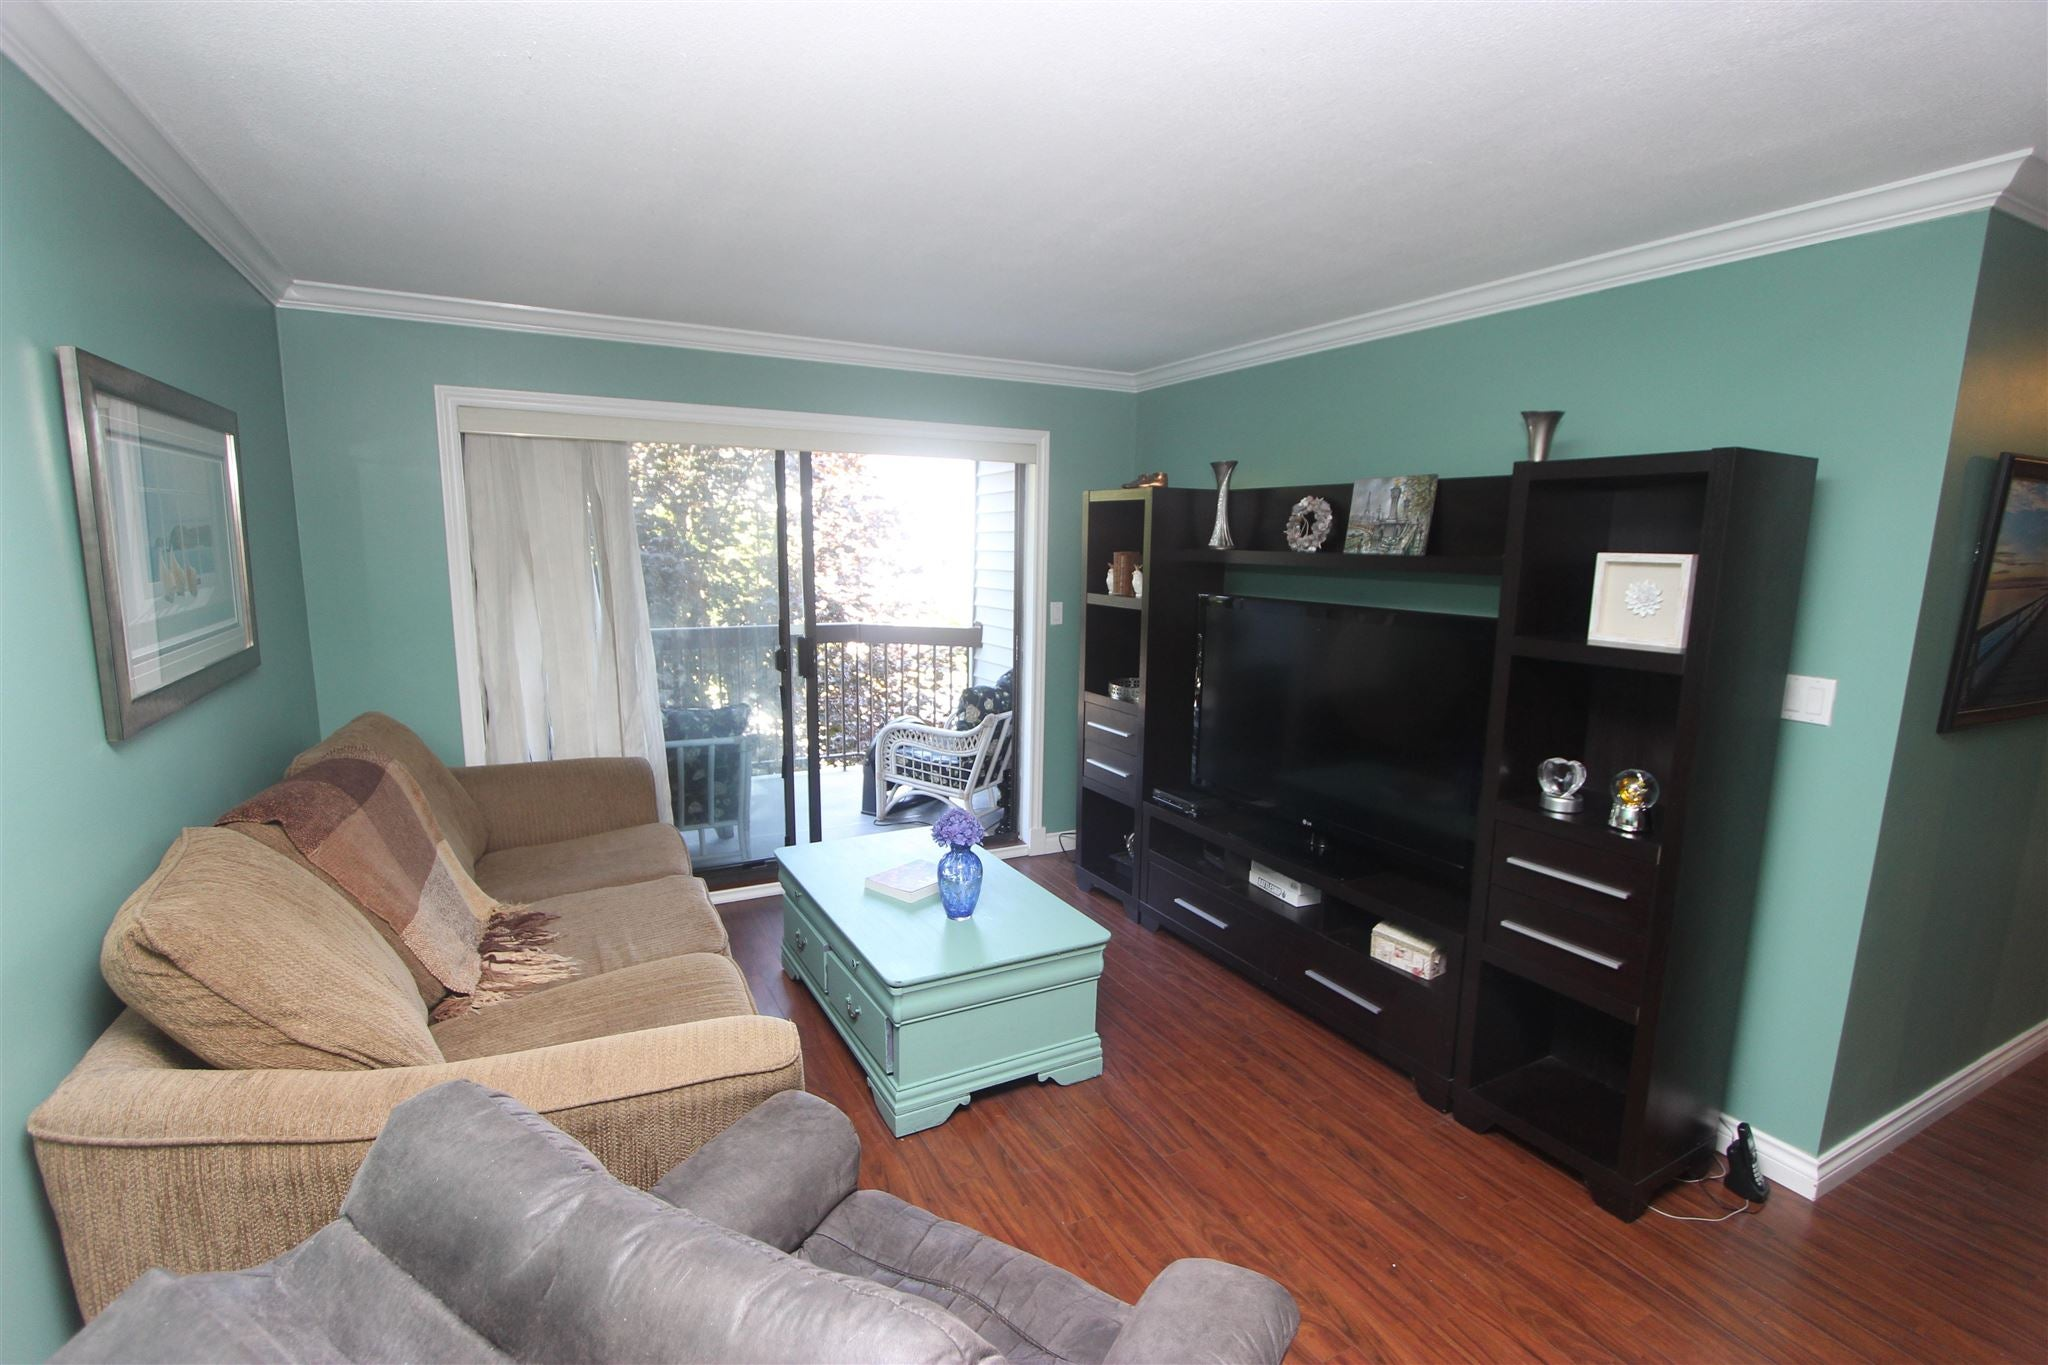 202 15290 THRIFT AVENUE - White Rock Apartment/Condo for sale, 2 Bedrooms (R2605009) - #1